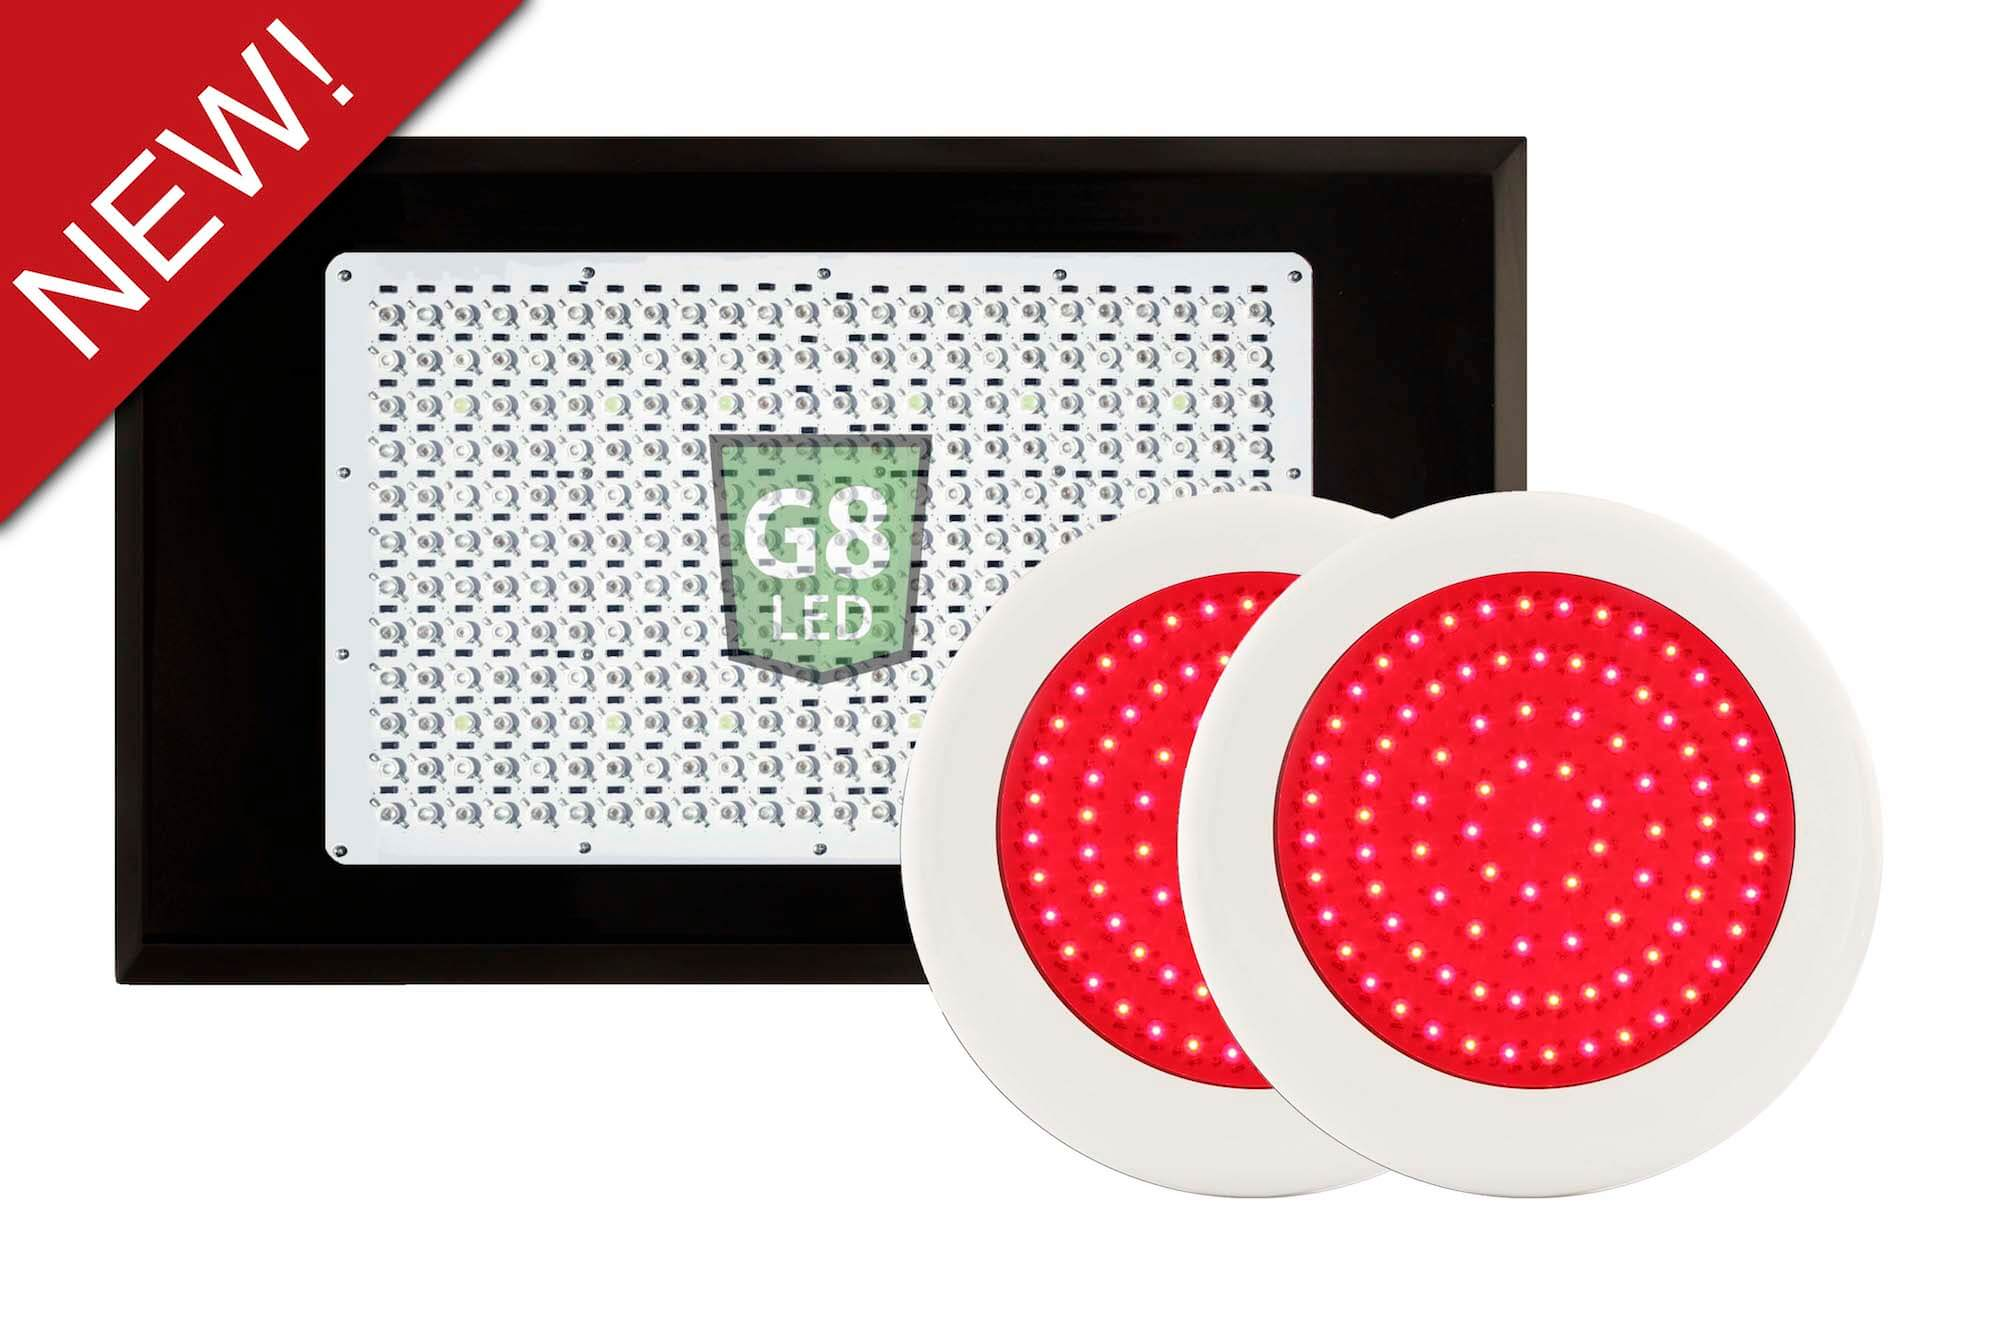 G8LED 900 Watt LED Grow Light Kit